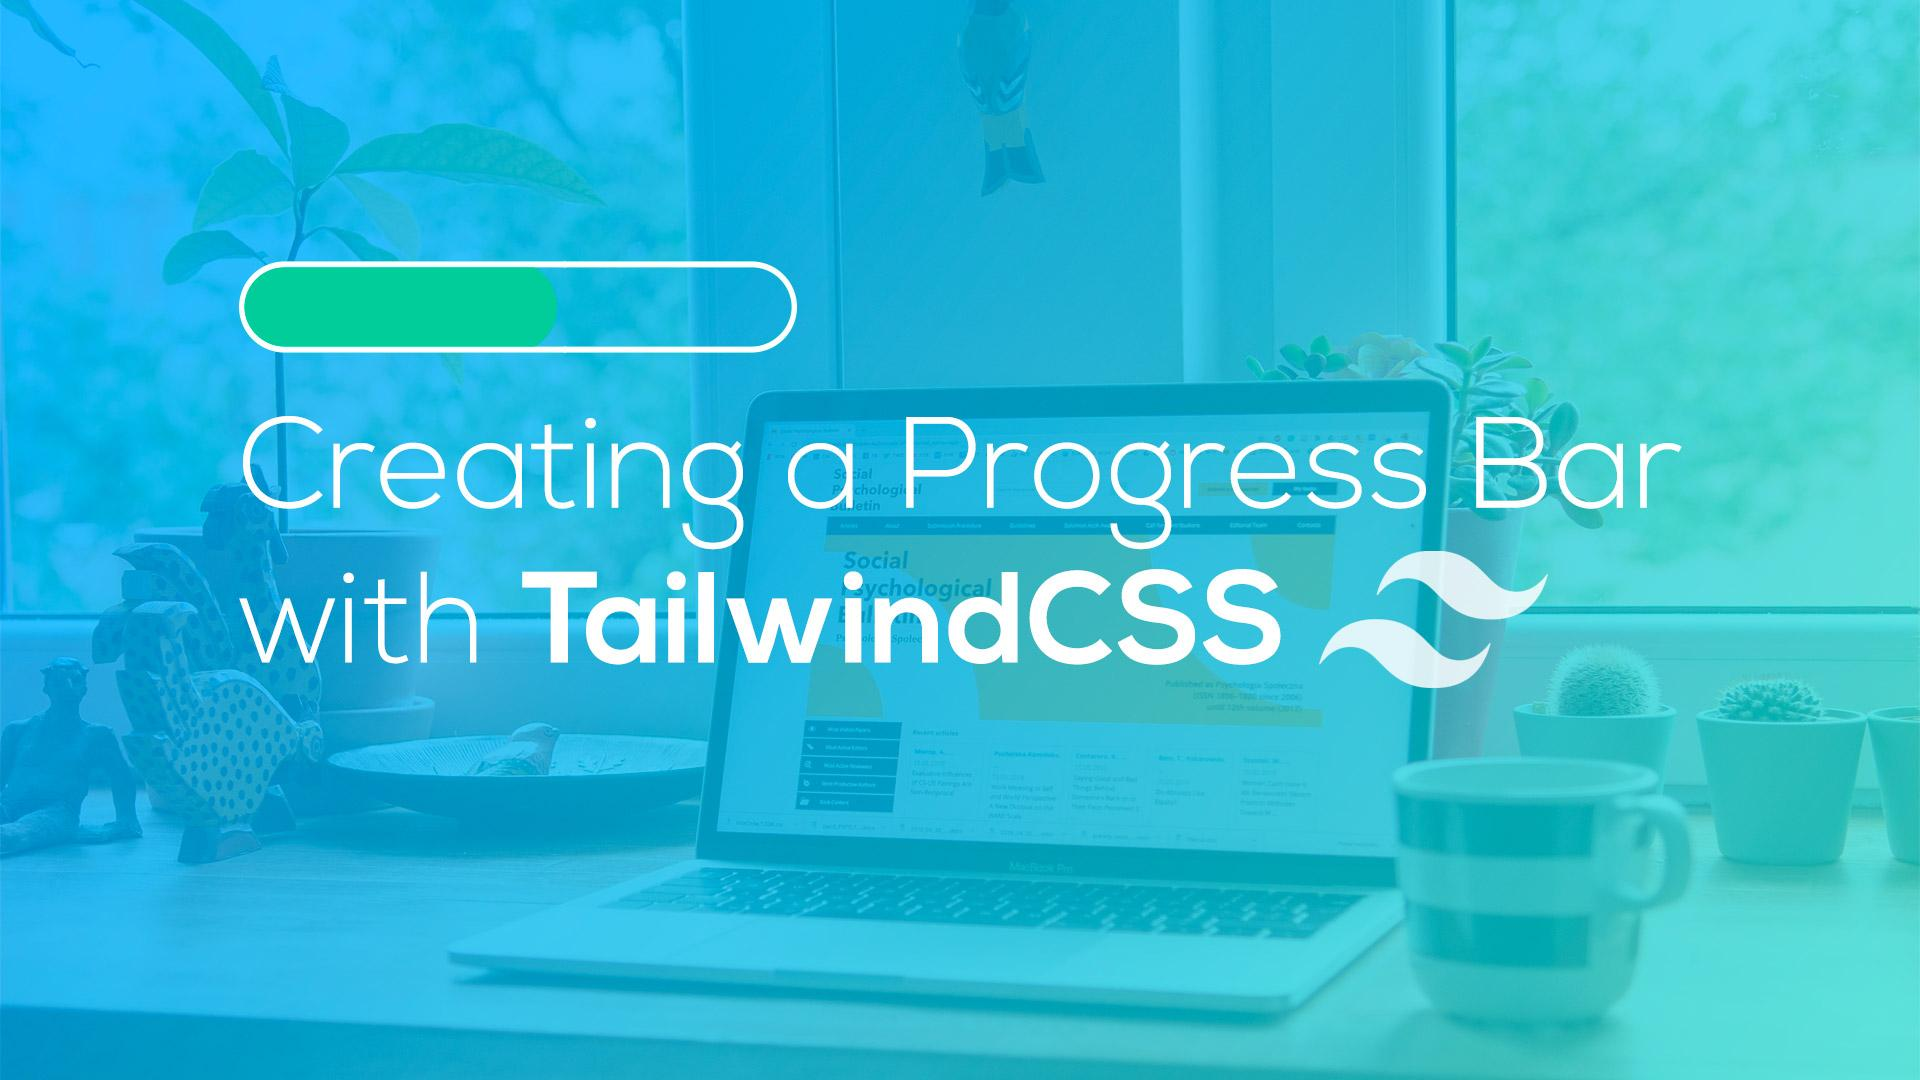 Creating a Progress Bar with Tailwind